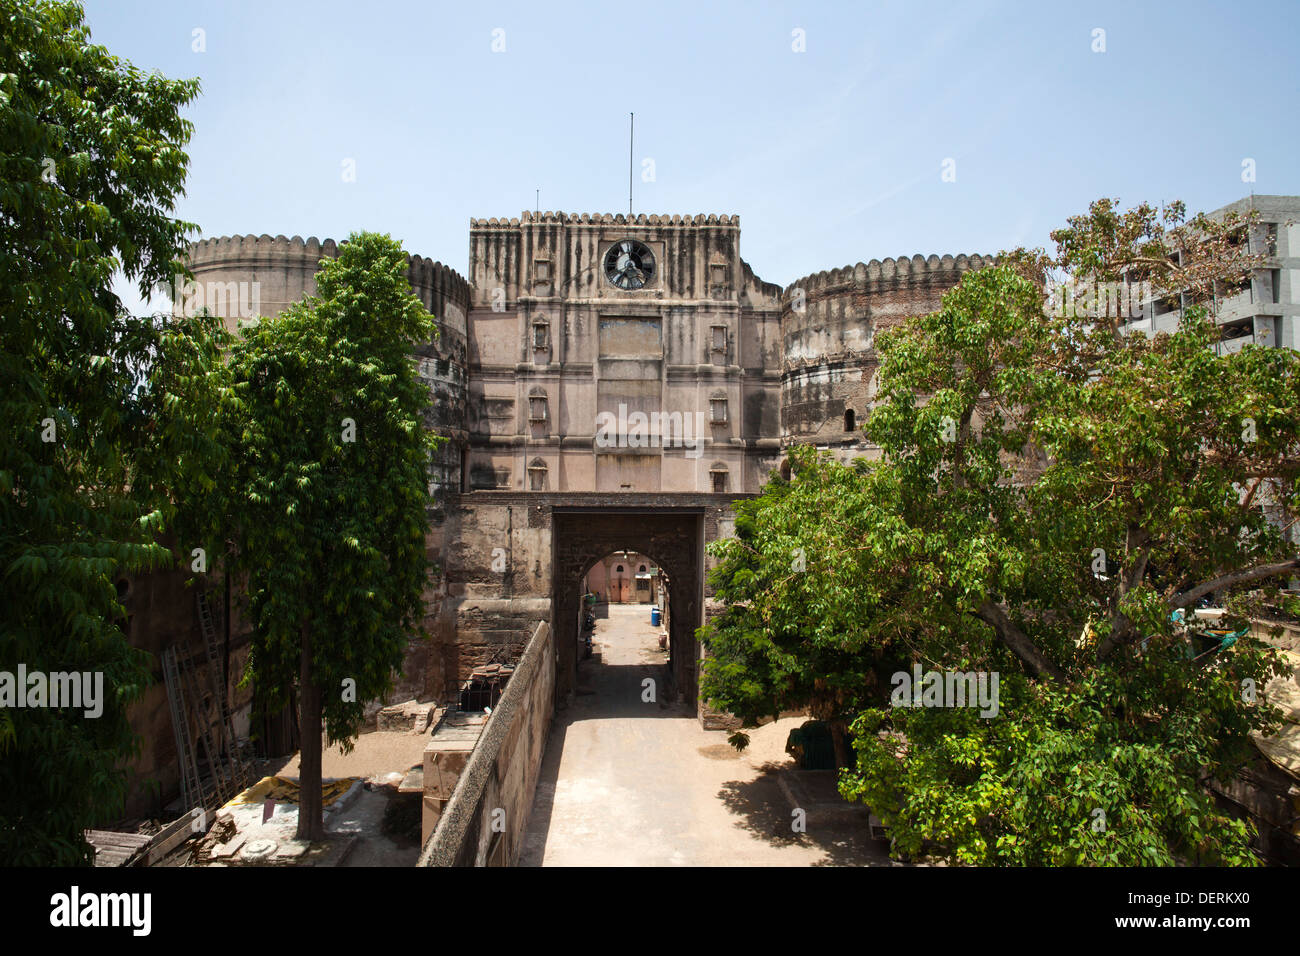 Bhadra Fort, Ahmedabad, Gujarat, India - Stock Image